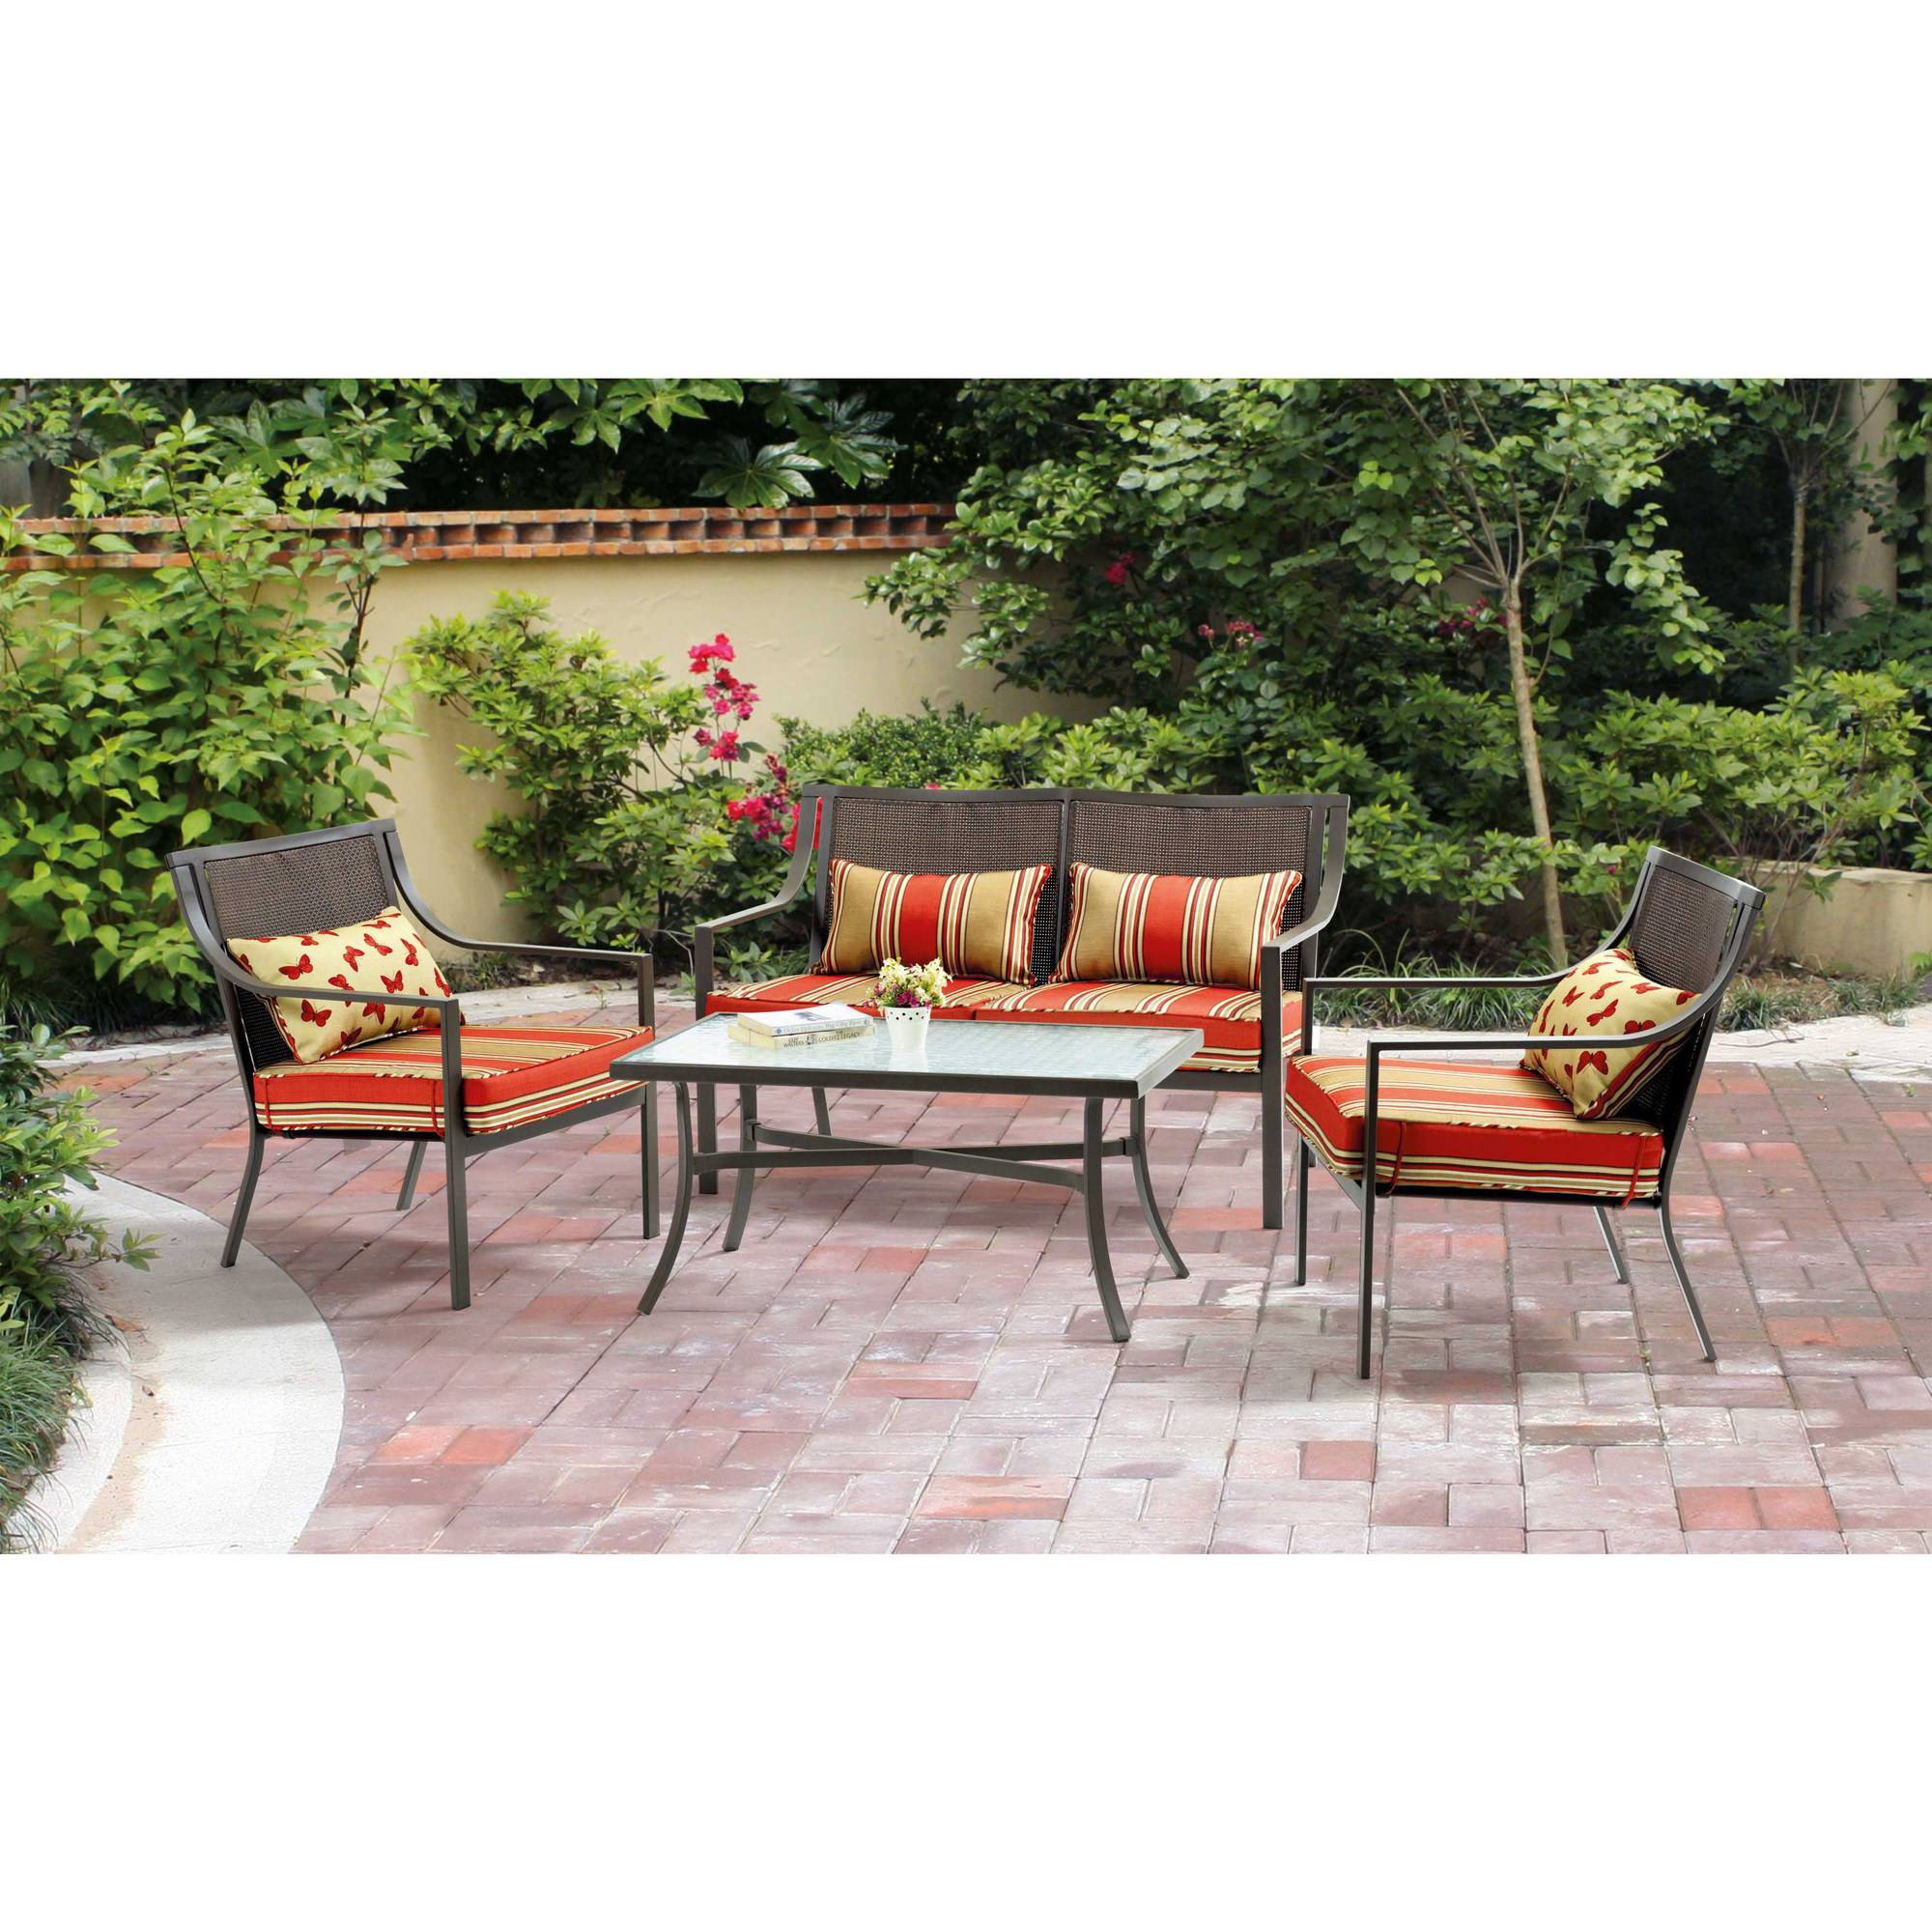 Gentil Better Homes And Gardens Azalea Ridge Outdoor Conversation Set   Walmart.com